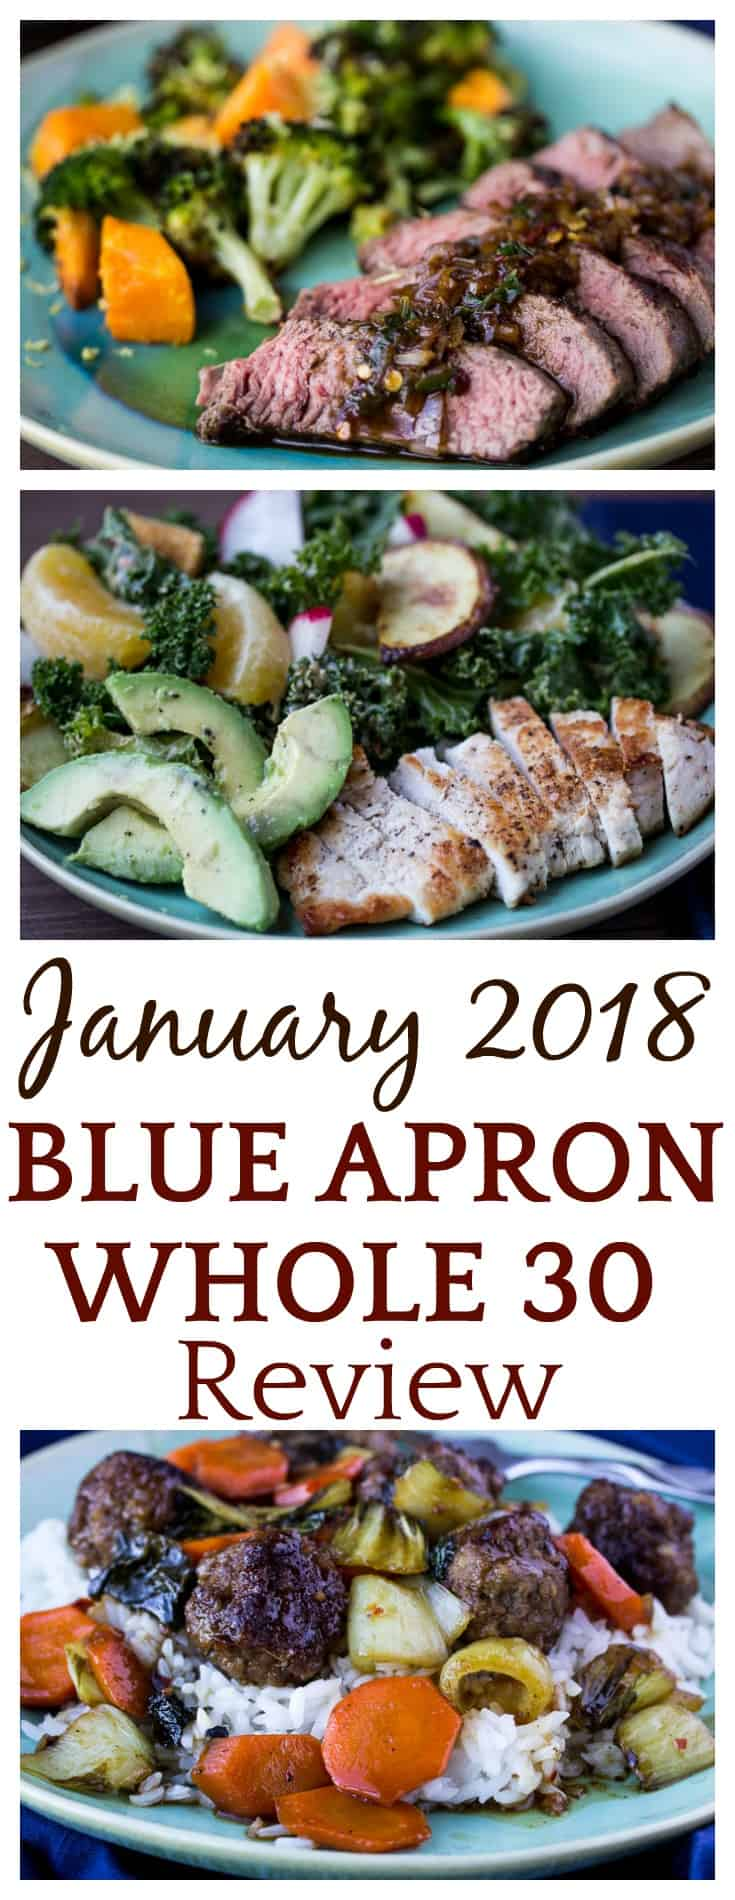 For 8 weeks in the beginning of 2018, Blue Apron teamed up with Whole 30 to bring you even more healthier meal options! This is a Blue Apron Whole 30 Review for just one of those weeks! | #blueapron #blueapronmeals #whole30 #whole30recipes #mealkit